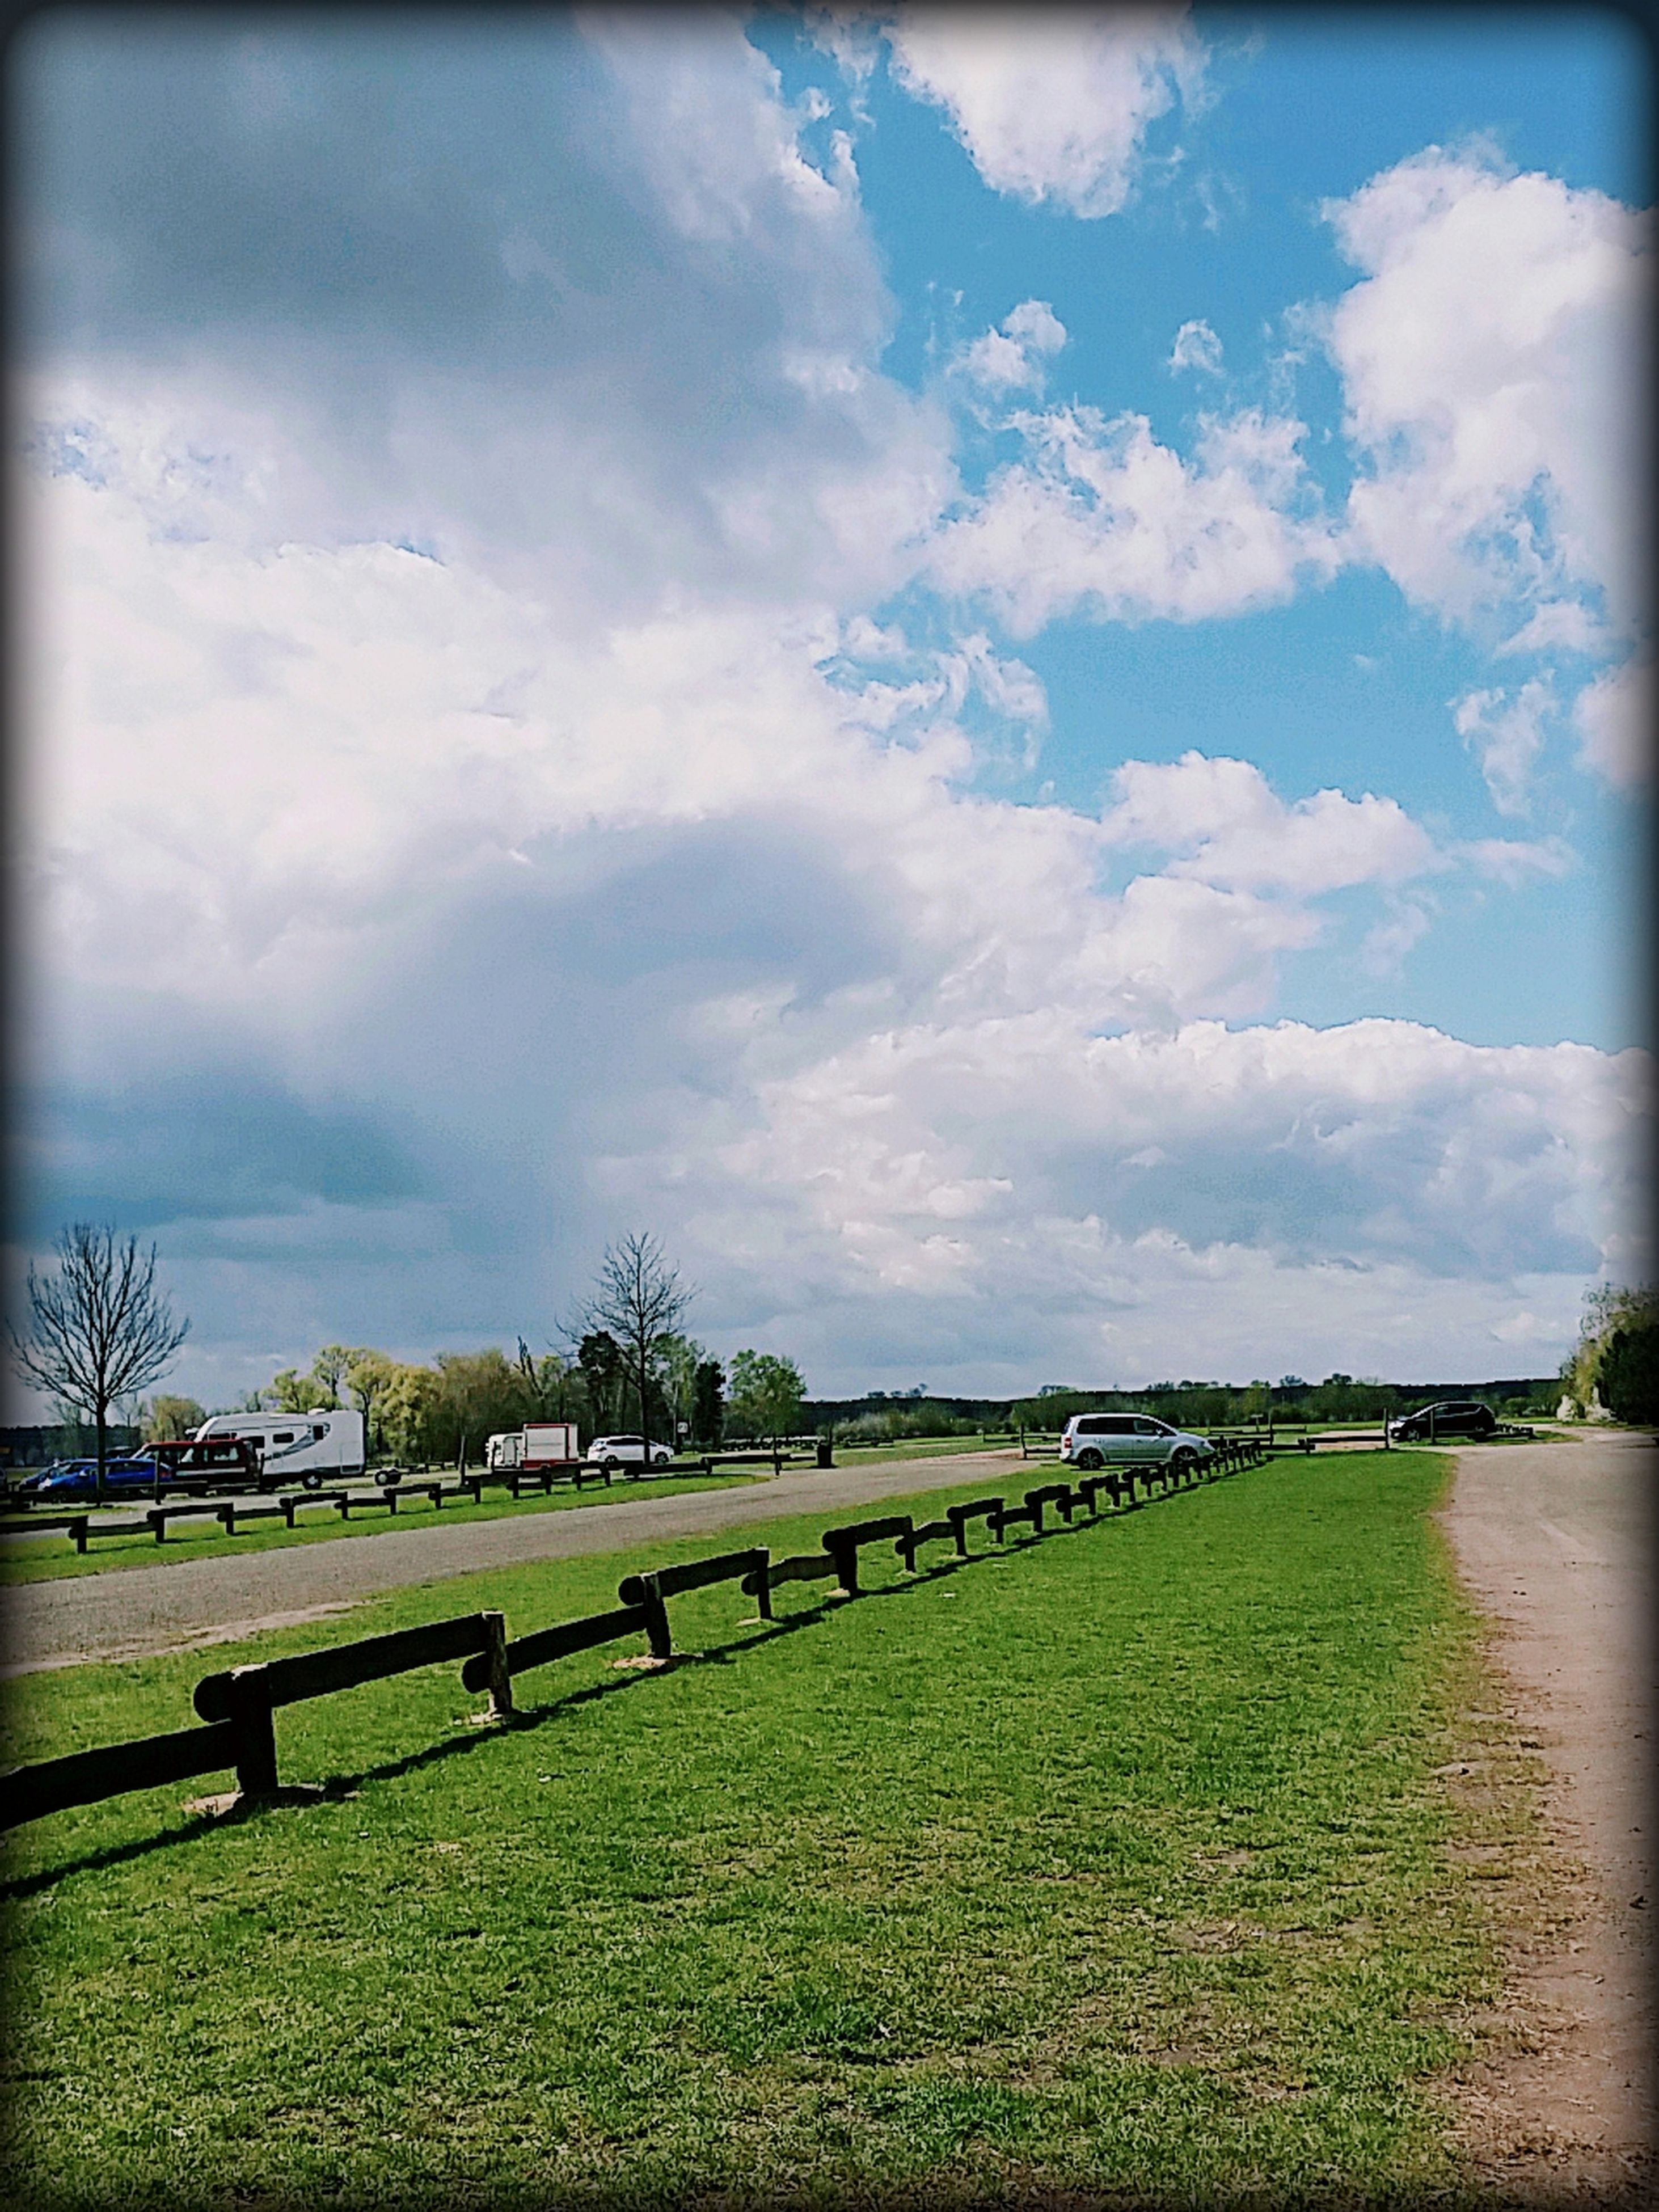 sky, grass, cloud - sky, nature, outdoors, tranquility, growth, no people, day, agriculture, tree, beauty in nature